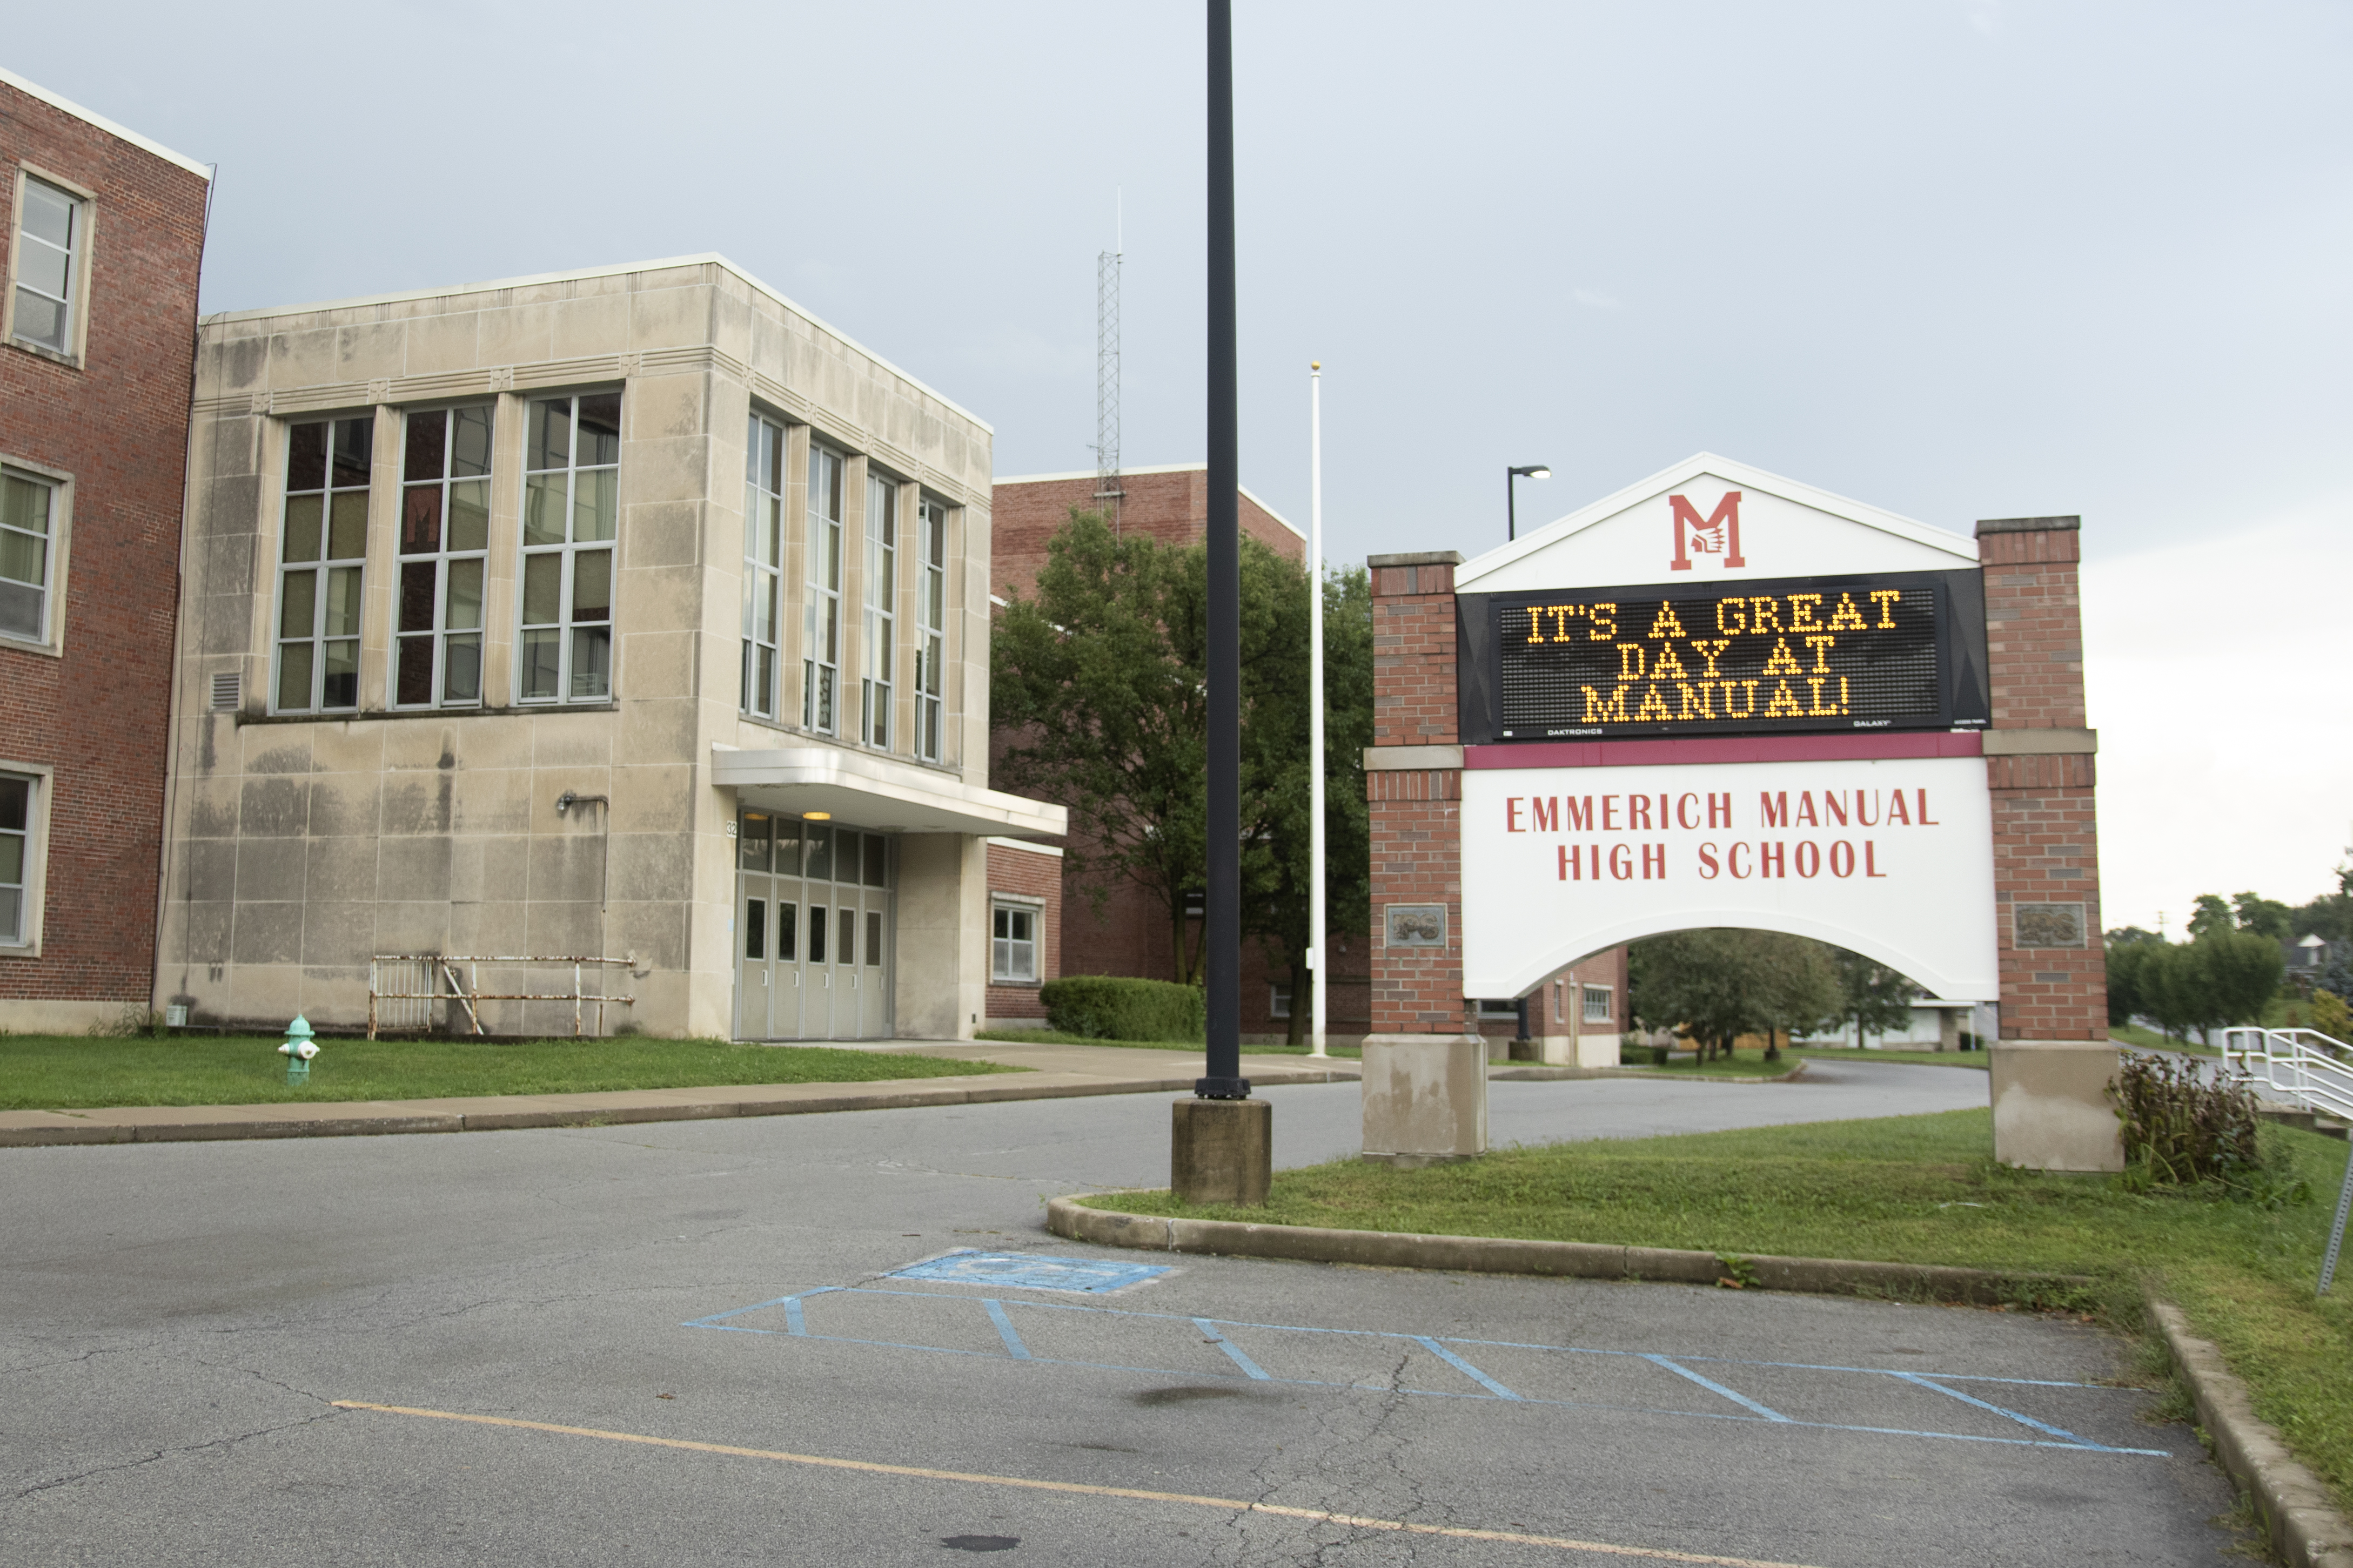 Manual High School in Indianapolis recorded the highest proportion of students who left to home-school, compared to 2018 graduates, out of all traditional high schools in the state, according to a Chalkbeat analysis.